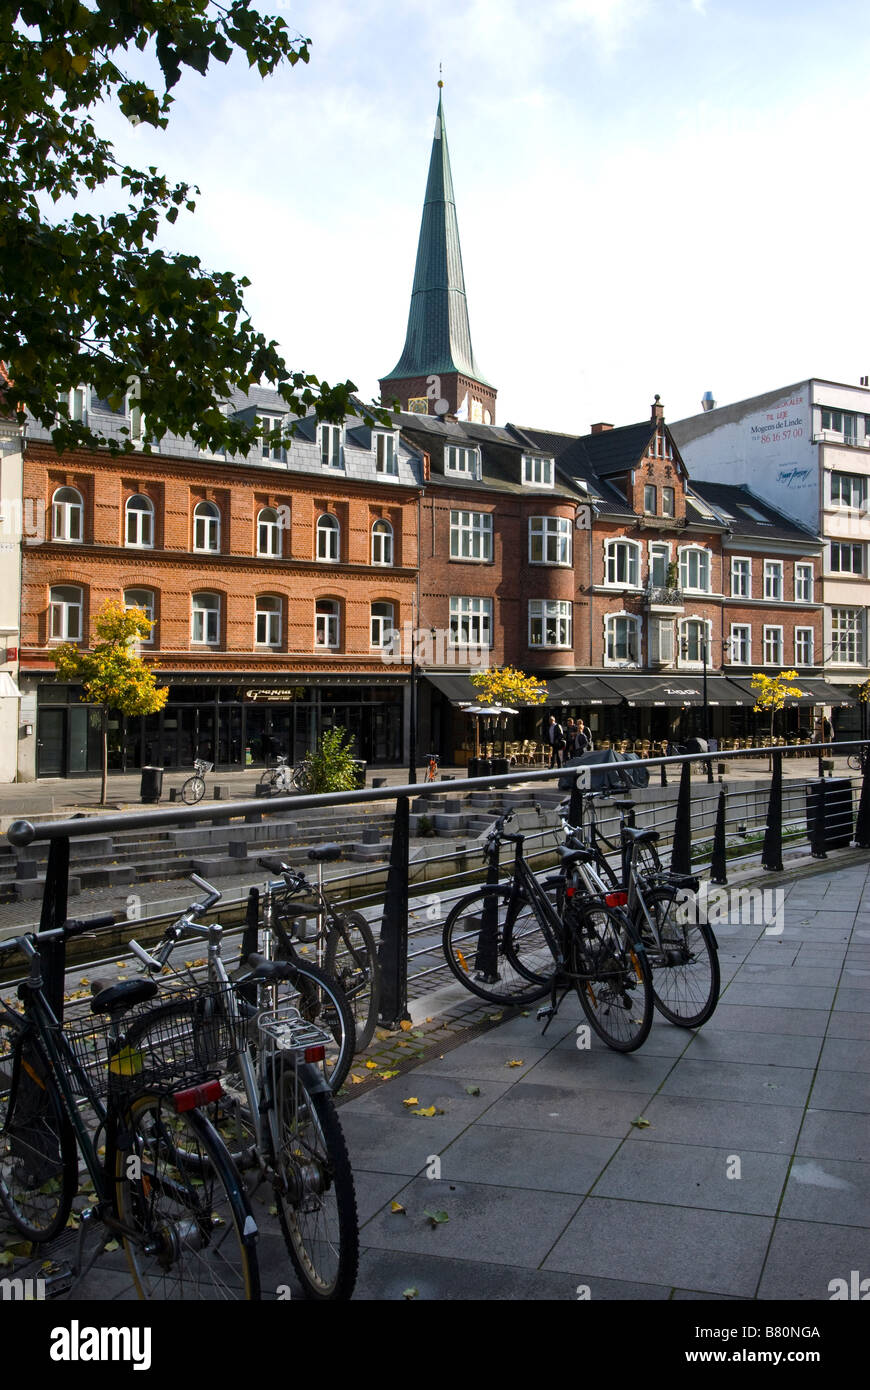 Bicycles parked by railings on Aboulevarden, Arhus, Denmark - Stock Image